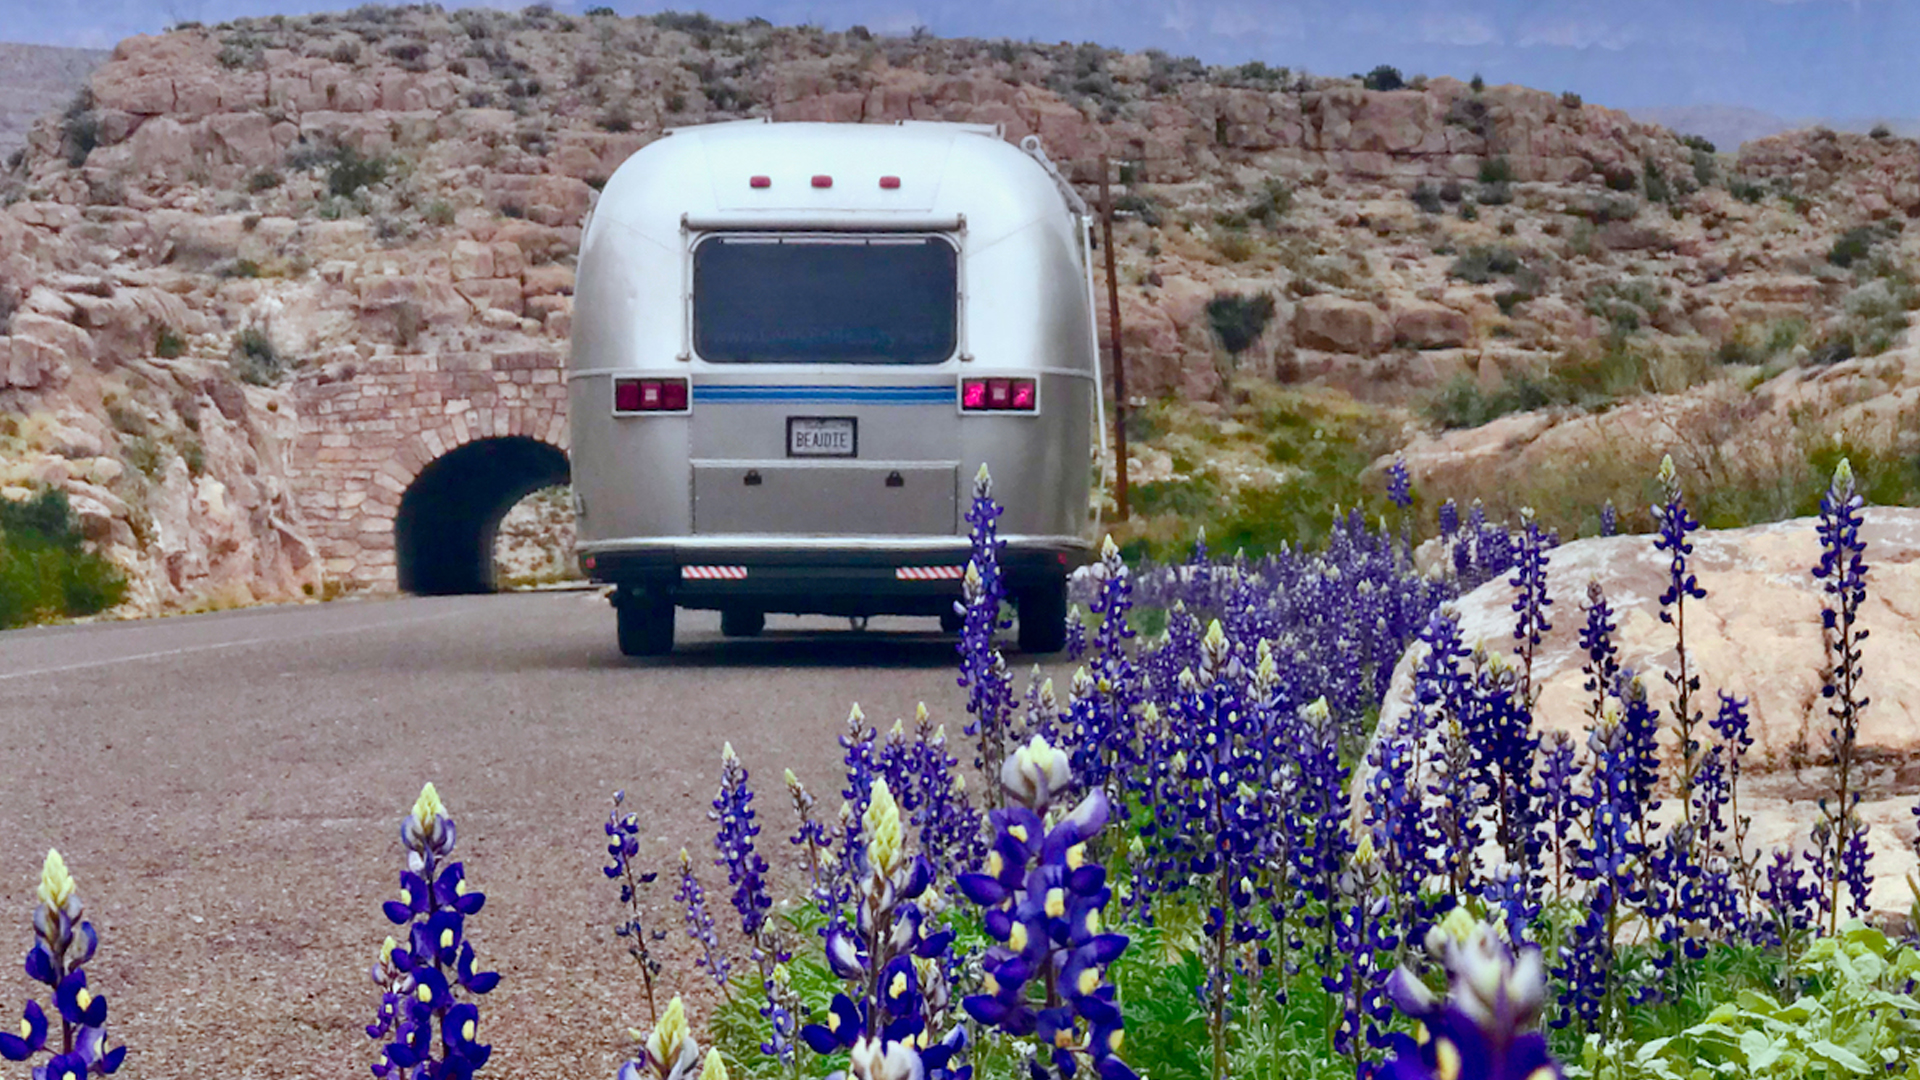 Airstream driving down the road in the desert